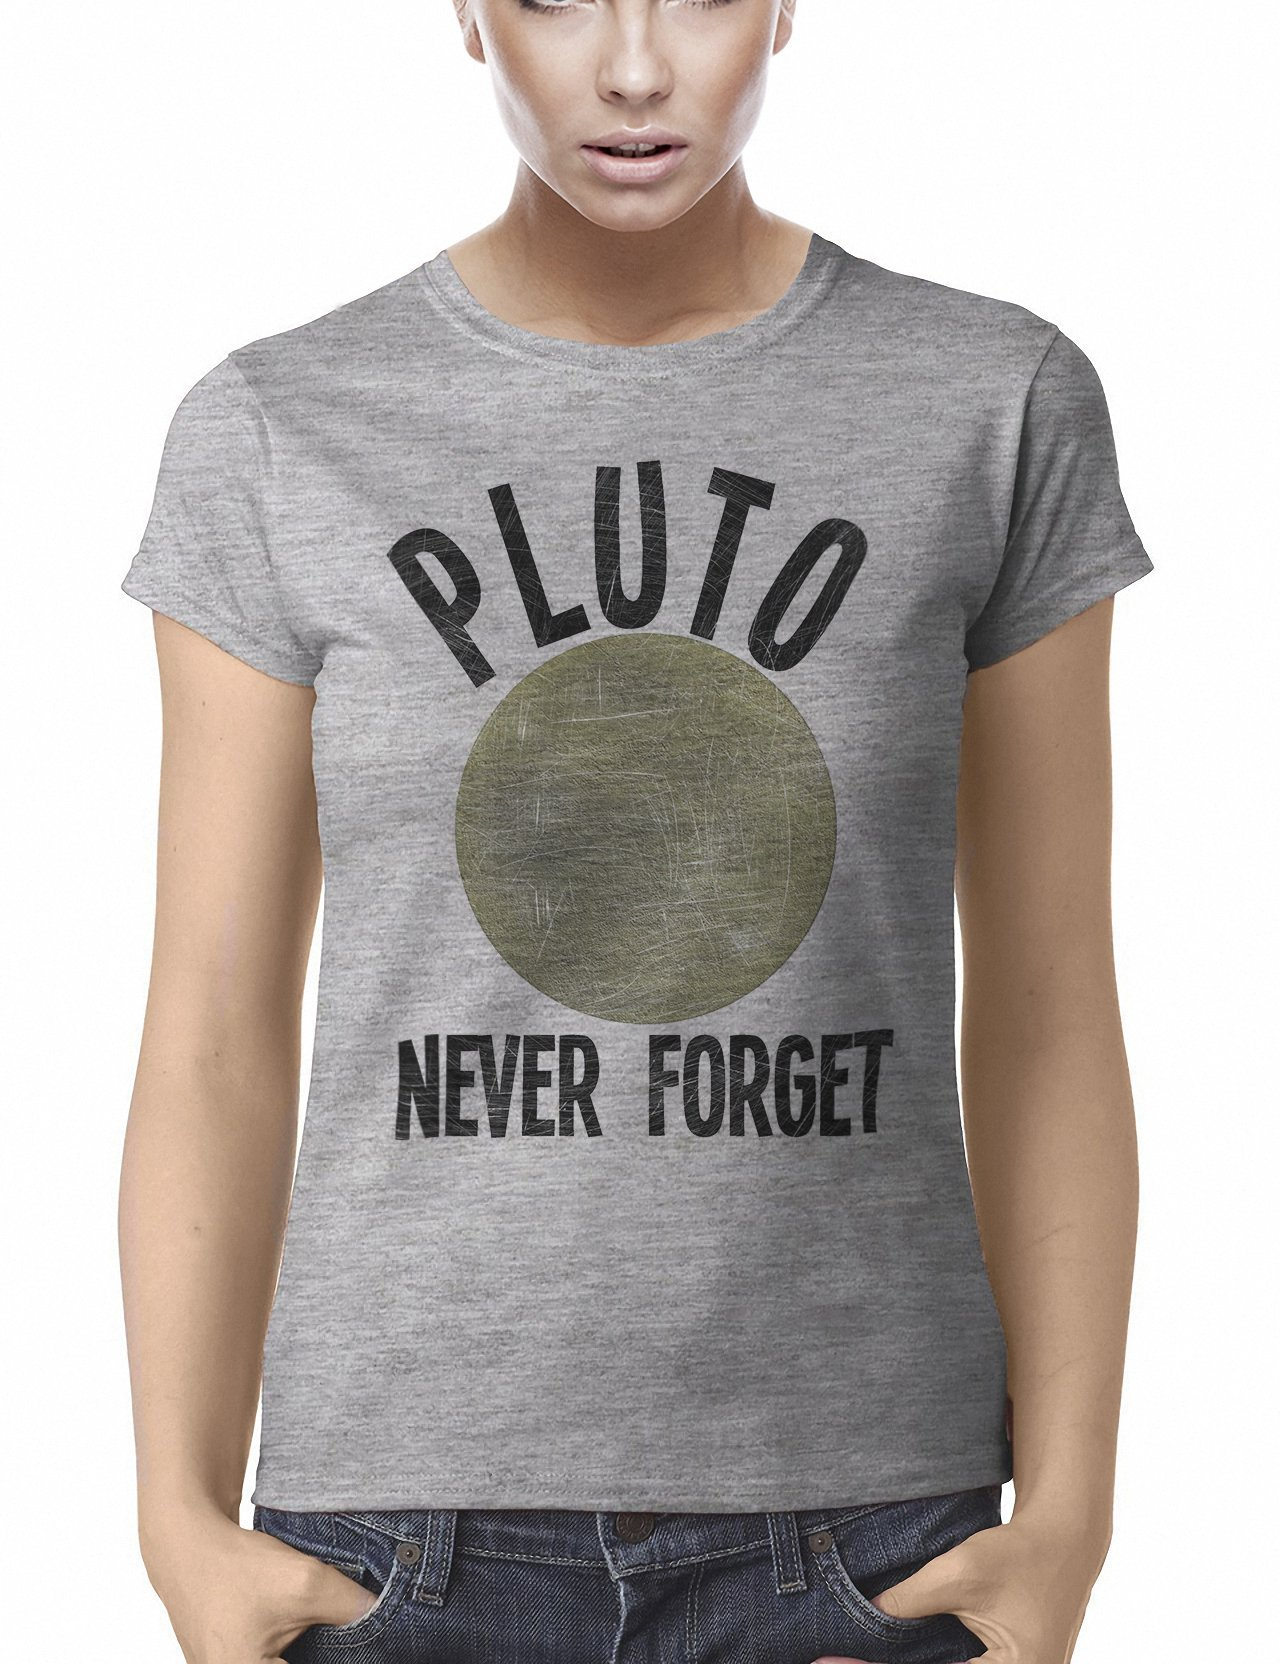 Pluto Never Forget Funny T Shirt 9984